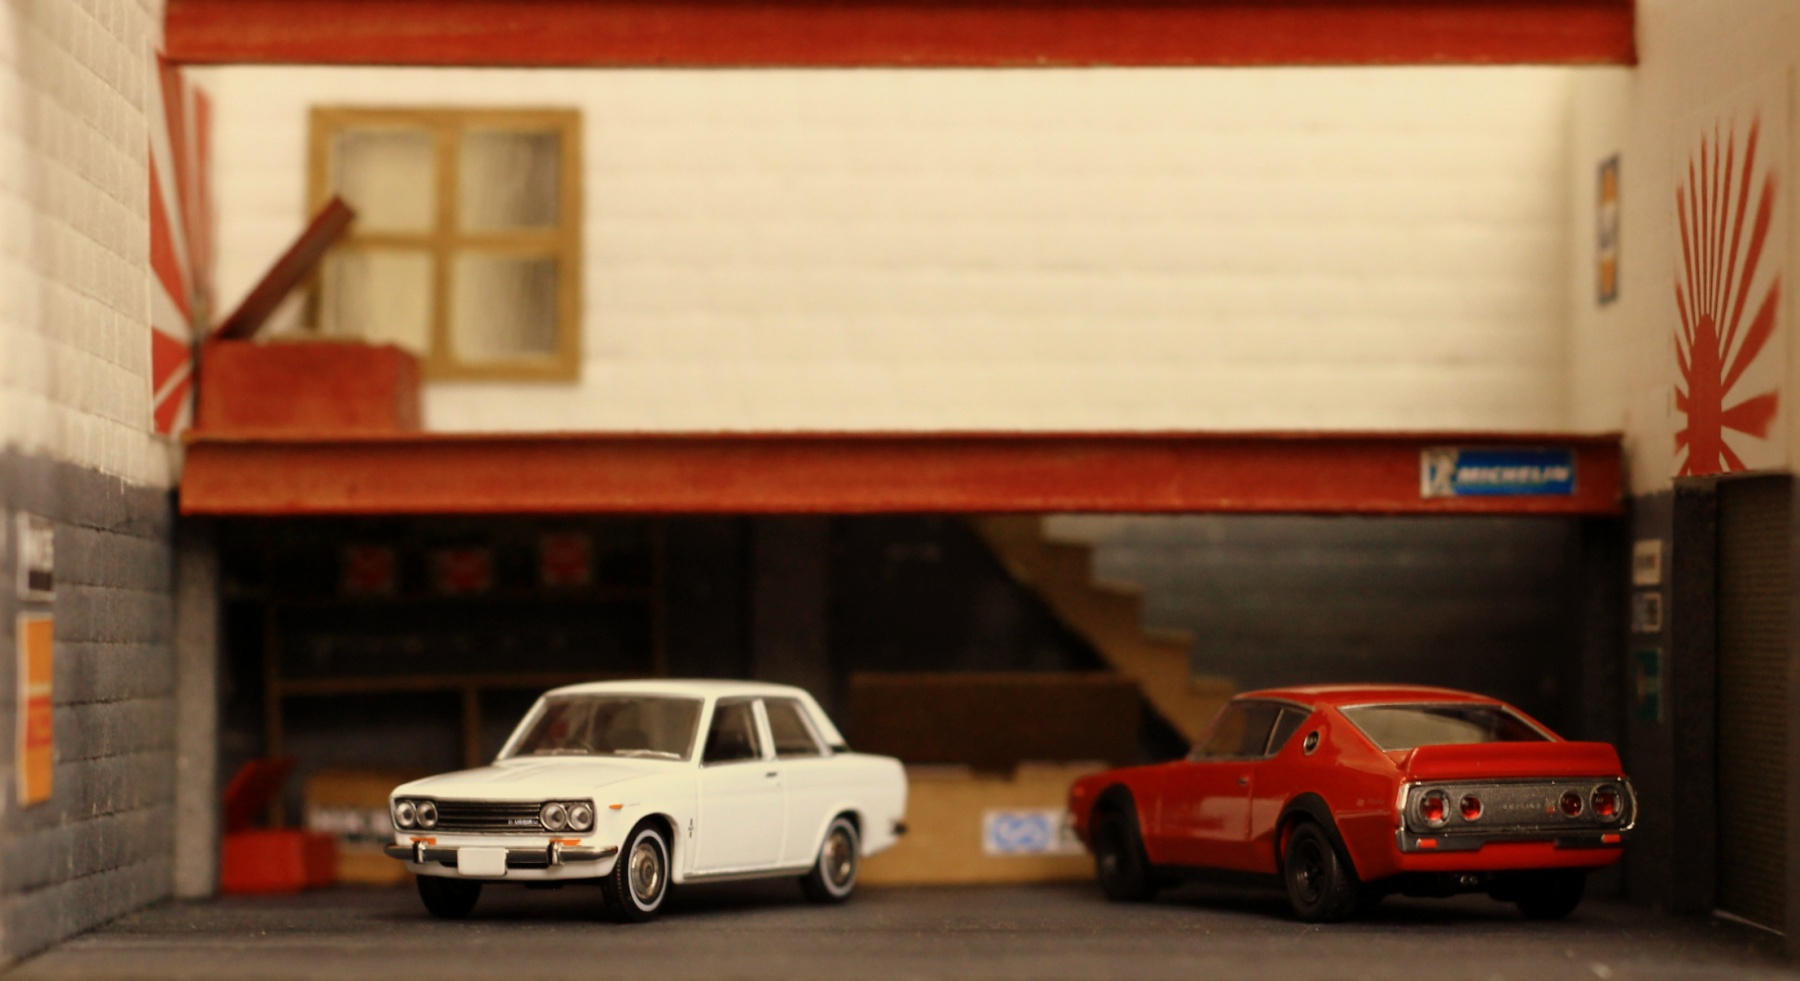 Model Photography and passion for die-cast car models | Ar Saiful Hasan Tariq